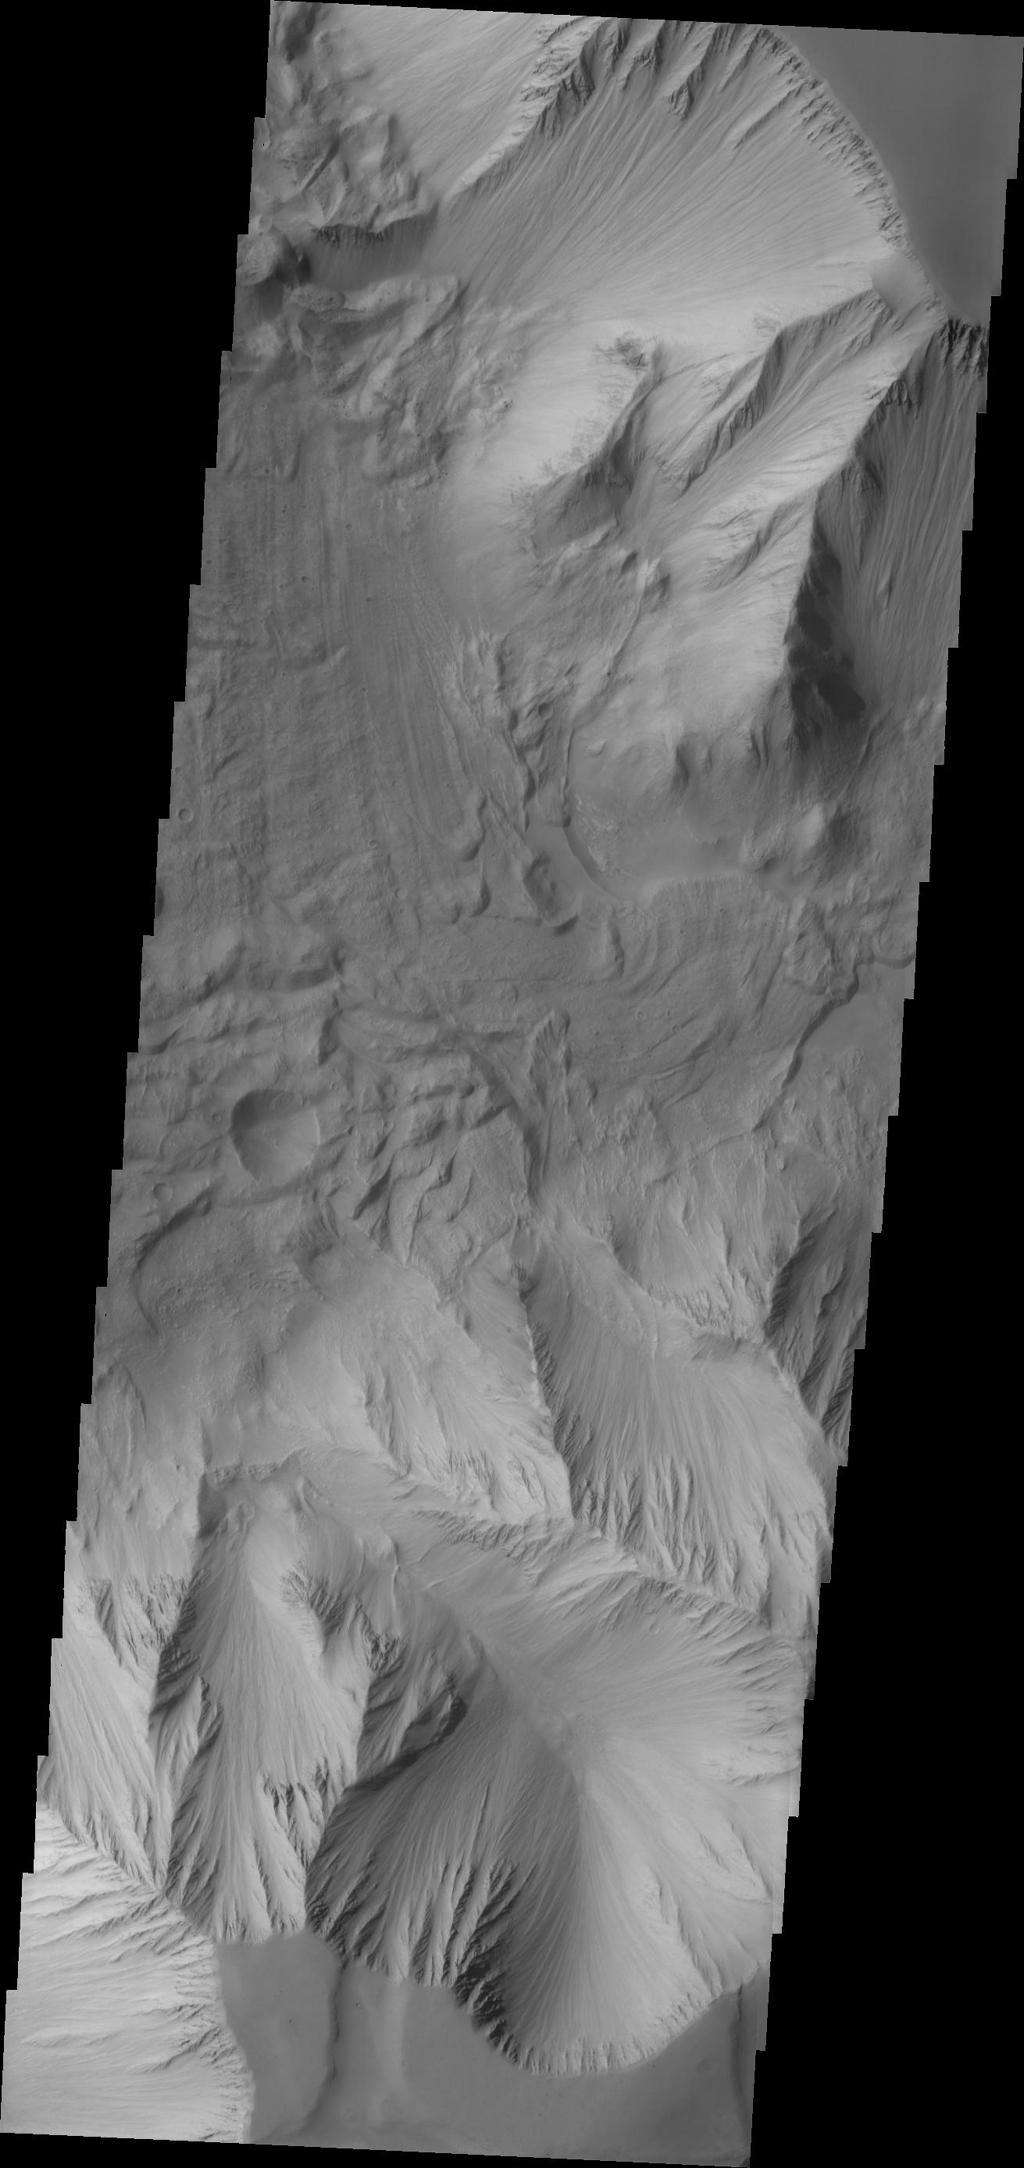 This image captured by NASA's 2001 Mars Odyssey spacecraft is part of Tithonium Chasma, part of the western side of Valles Marineris.